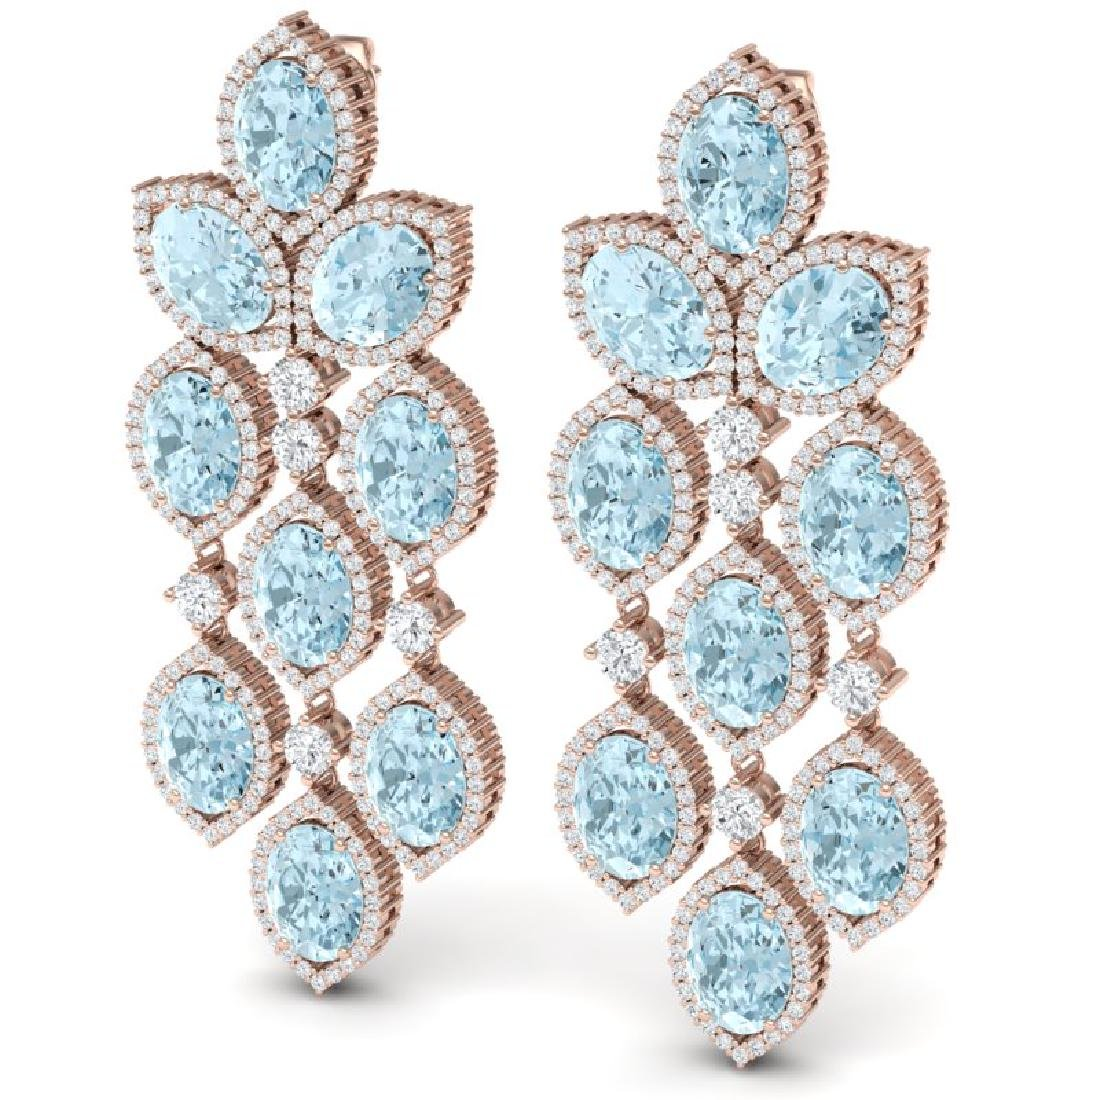 23.76 CTW Royalty Sky Topaz & VS Diamond Earrings 18K - 2